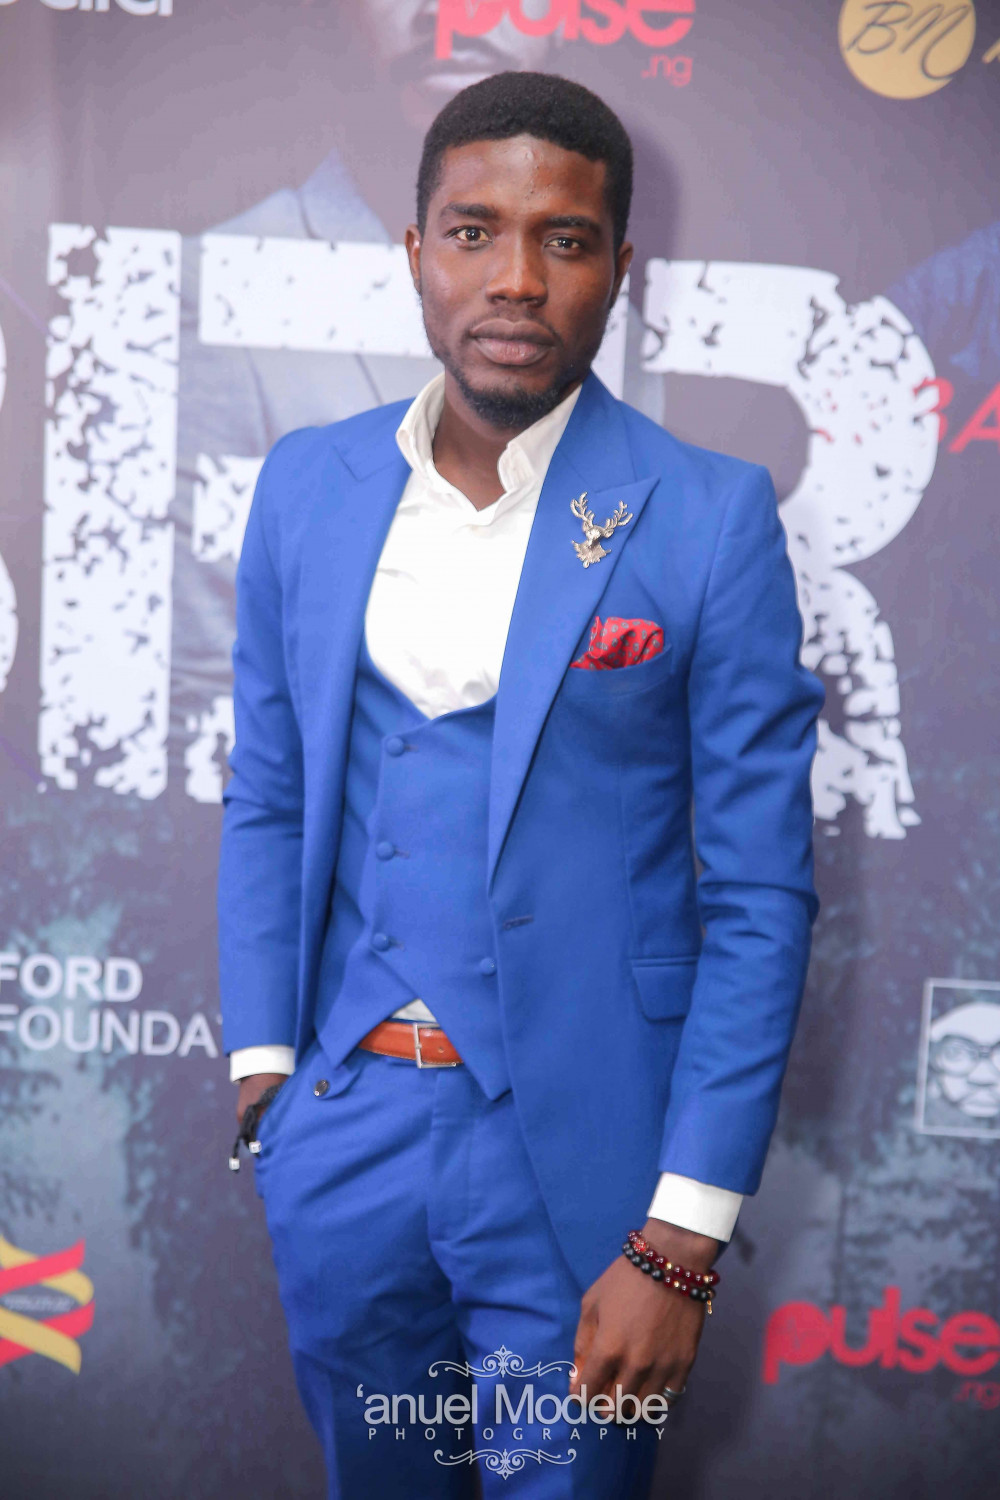 In 2018, Seun Ajayi opened up on his role as a naive young character in popular sitcom, 'Hustle' [Bella Naija]